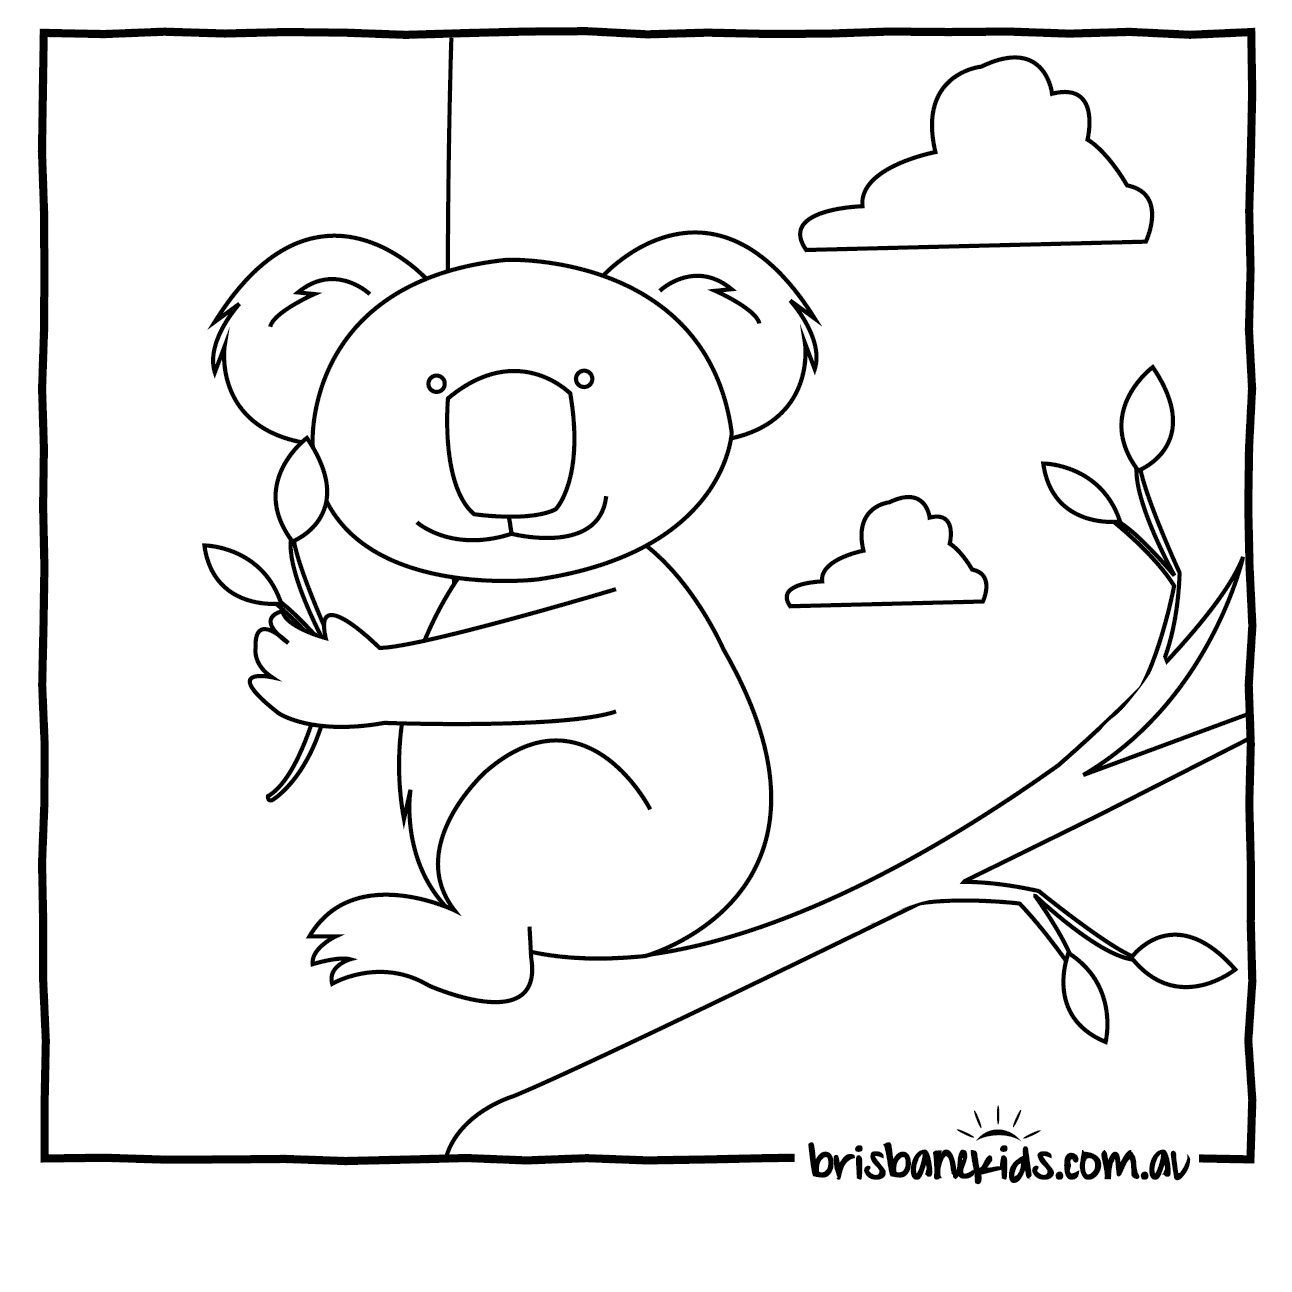 Childrens Coloring Pages Animals Australian Colouring Brisbane